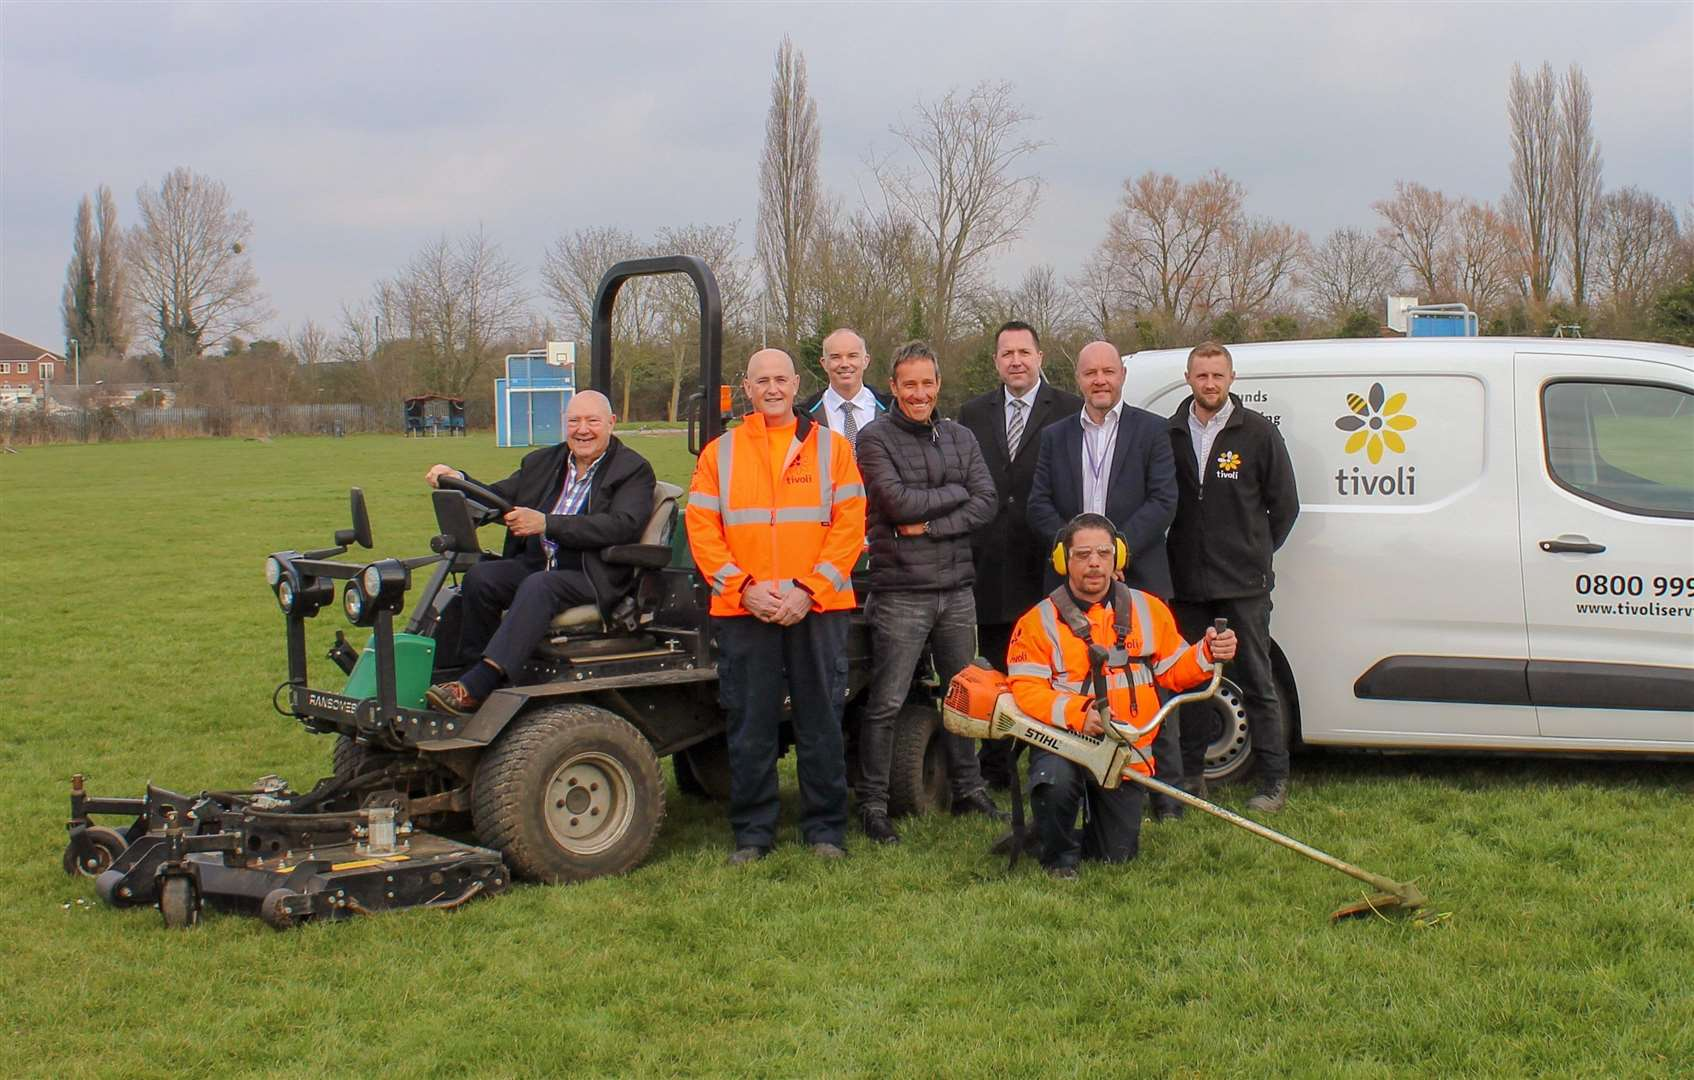 Pictured from left, are Cllr Peter Murphy, Fenland 's Portfolio Holder for the Environment, Tivoli's Phil Fowler, Phil Hughes, FDC's Head of Parks and Open Spaces, Kevin Wilkins, FDC's Horticultural Officer, Nigel Payne, Regional Director for Tivoli, Simon Bell, FDC's Leisure and Open Spaces Contract Manager, and Marcus Pearson, Contracts Manager for Tivoli, with Tivoli's Mark Wakefield at the front. (7549002)